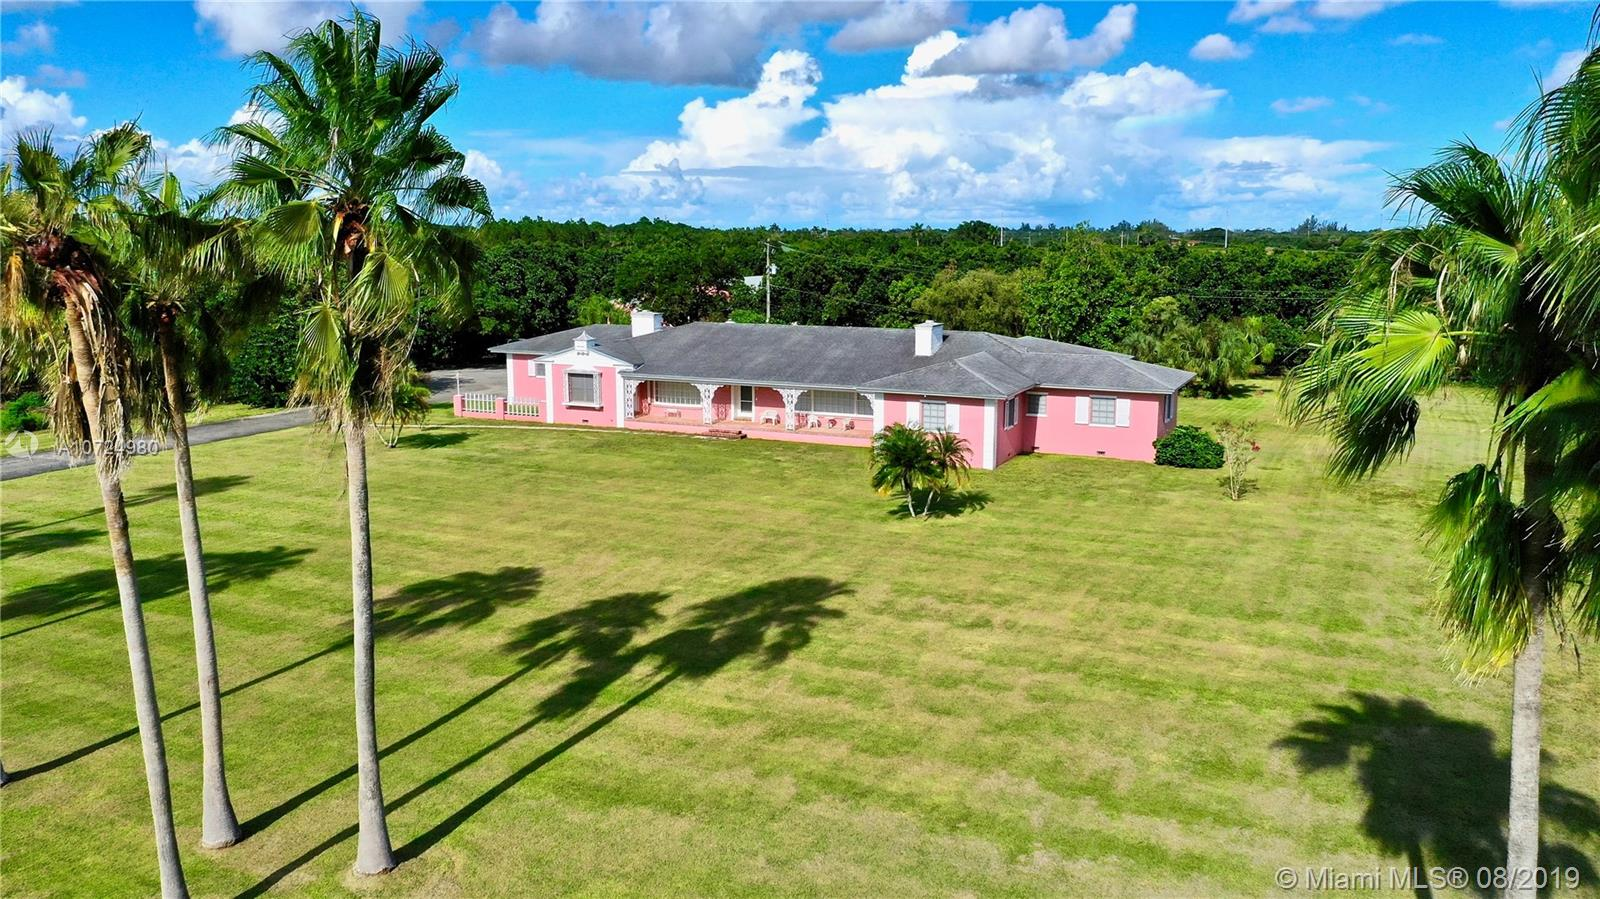 24155 SW 152 Ave, Homestead, FL 33032